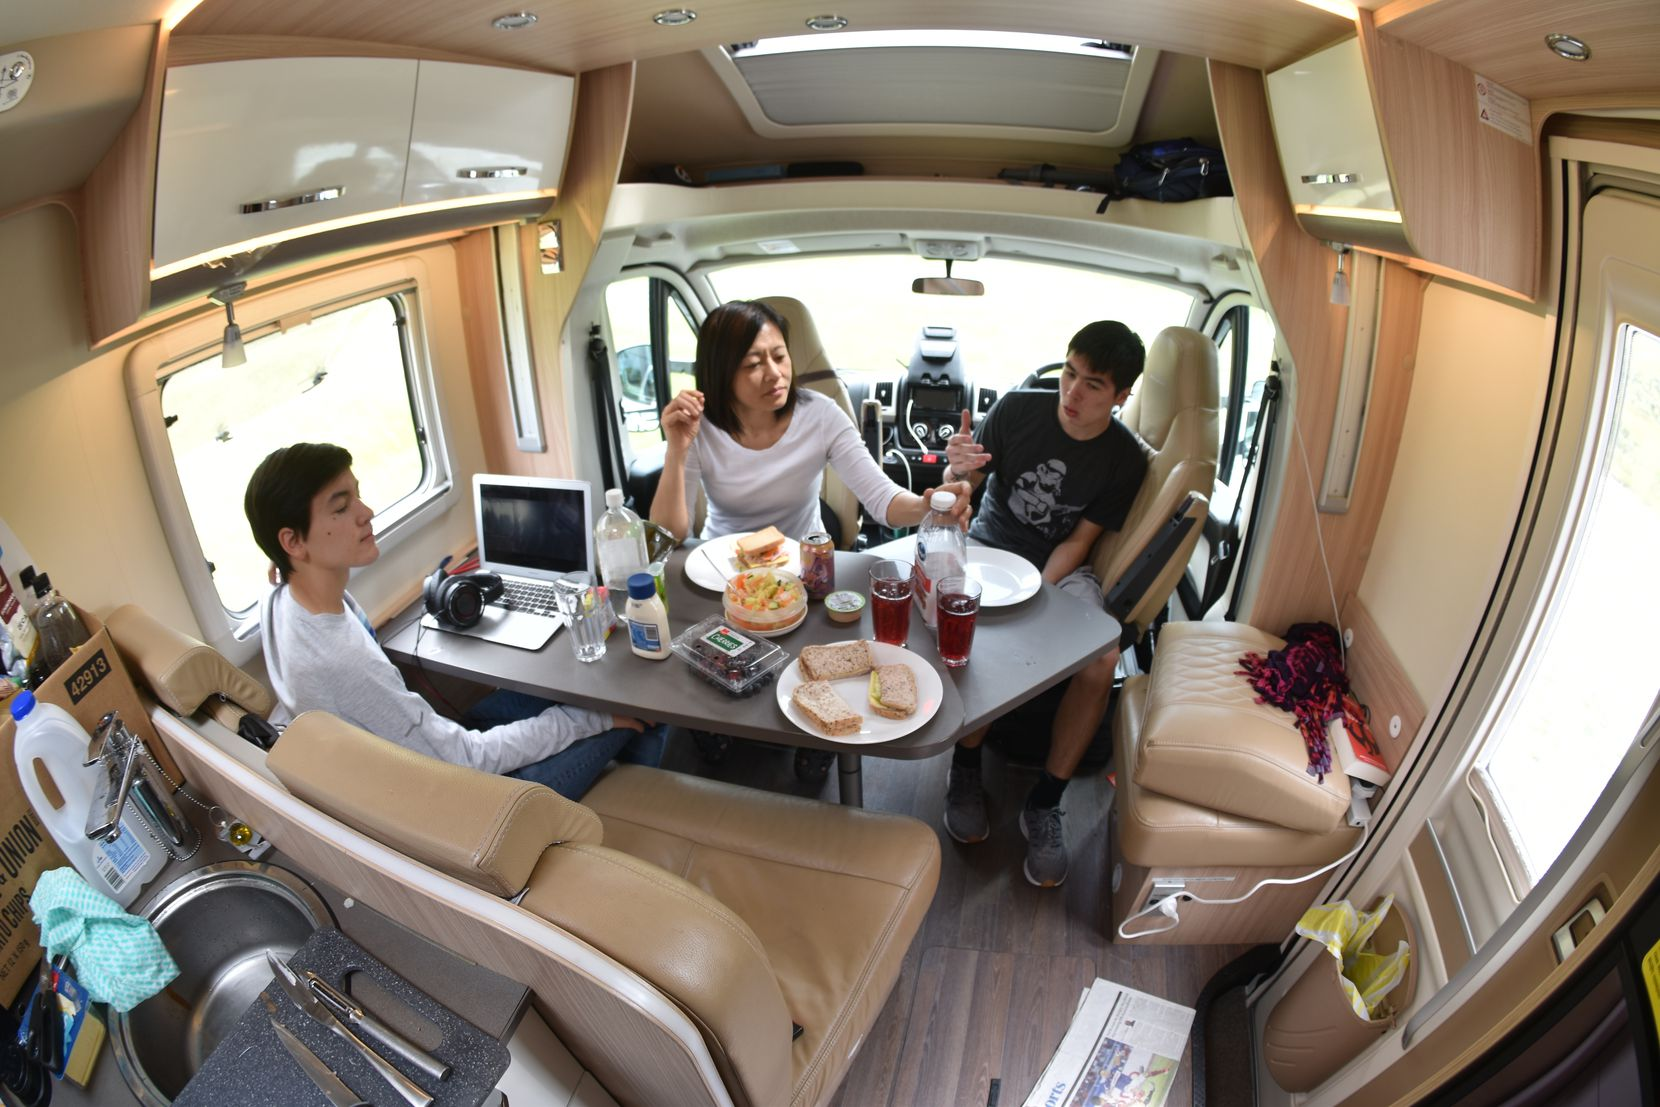 This photo taken using a fisheye lens shows the Foster family eating lunch in their rented camper van at a roadside stop on the South Island of New Zealand. Touring in a camper van is a popular way for tourists to see the country.